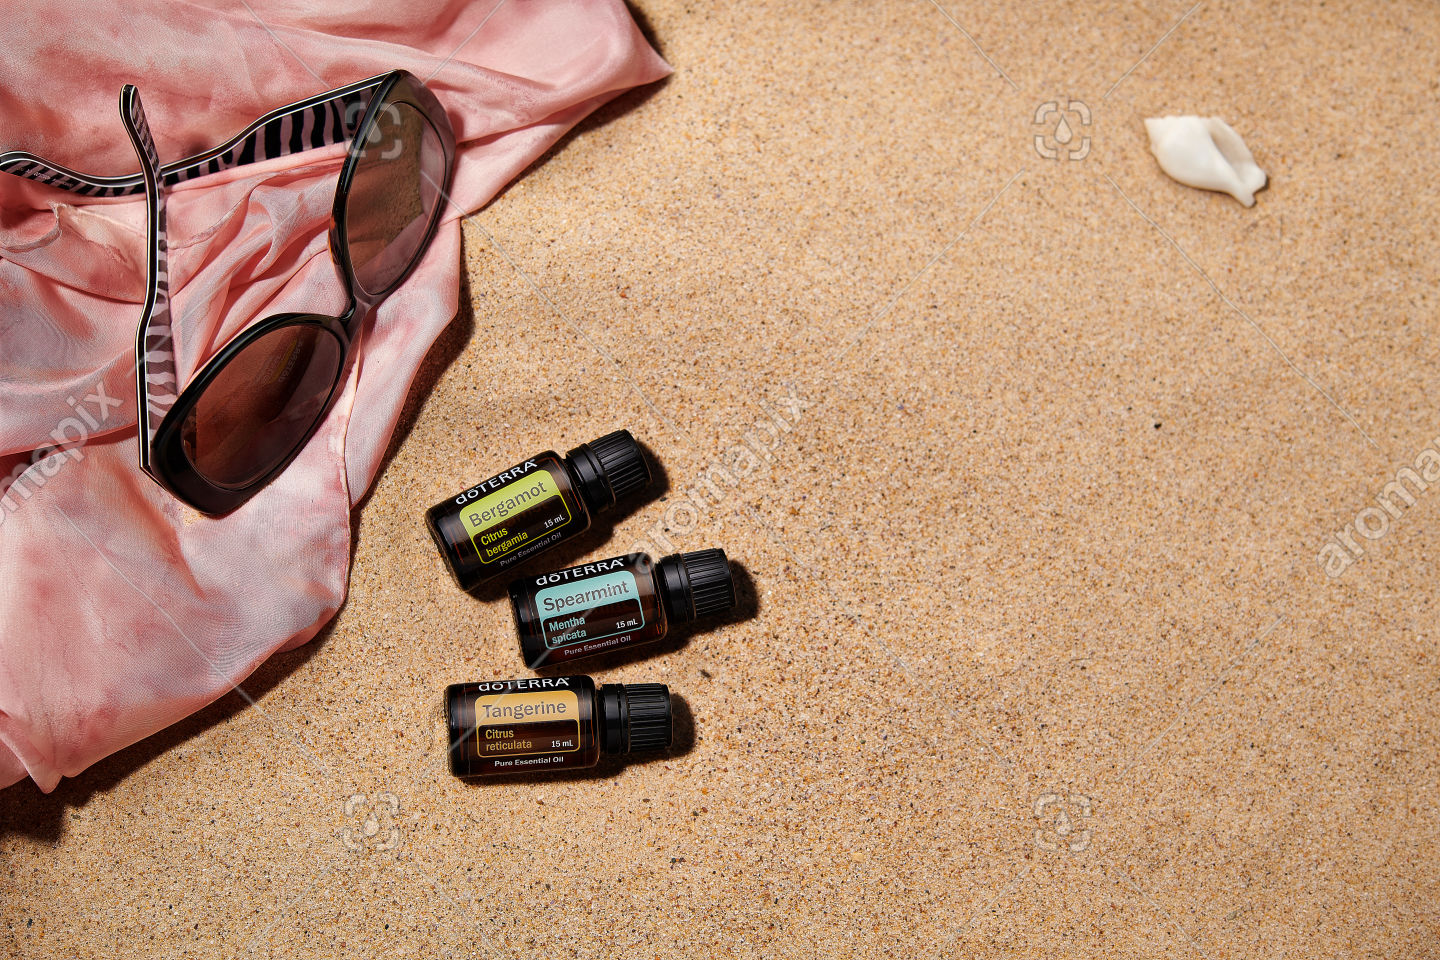 doTERRA Bergamot, Spearmint and Tangerine with accessories on sand